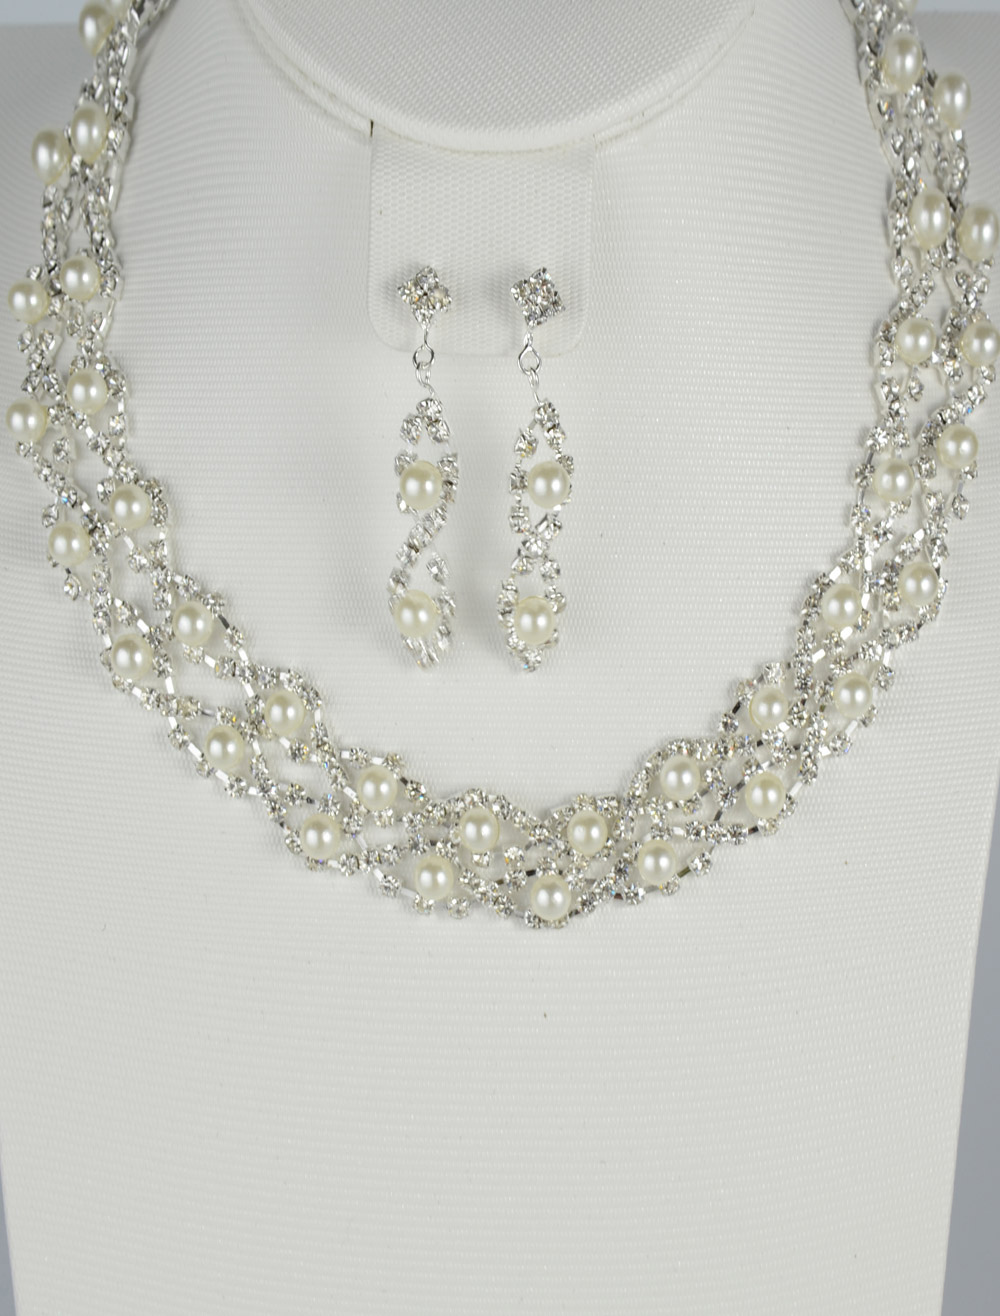 Silver Trendy Pearl Rhinestone Wedding Earrings and Necklace Jewelry Set